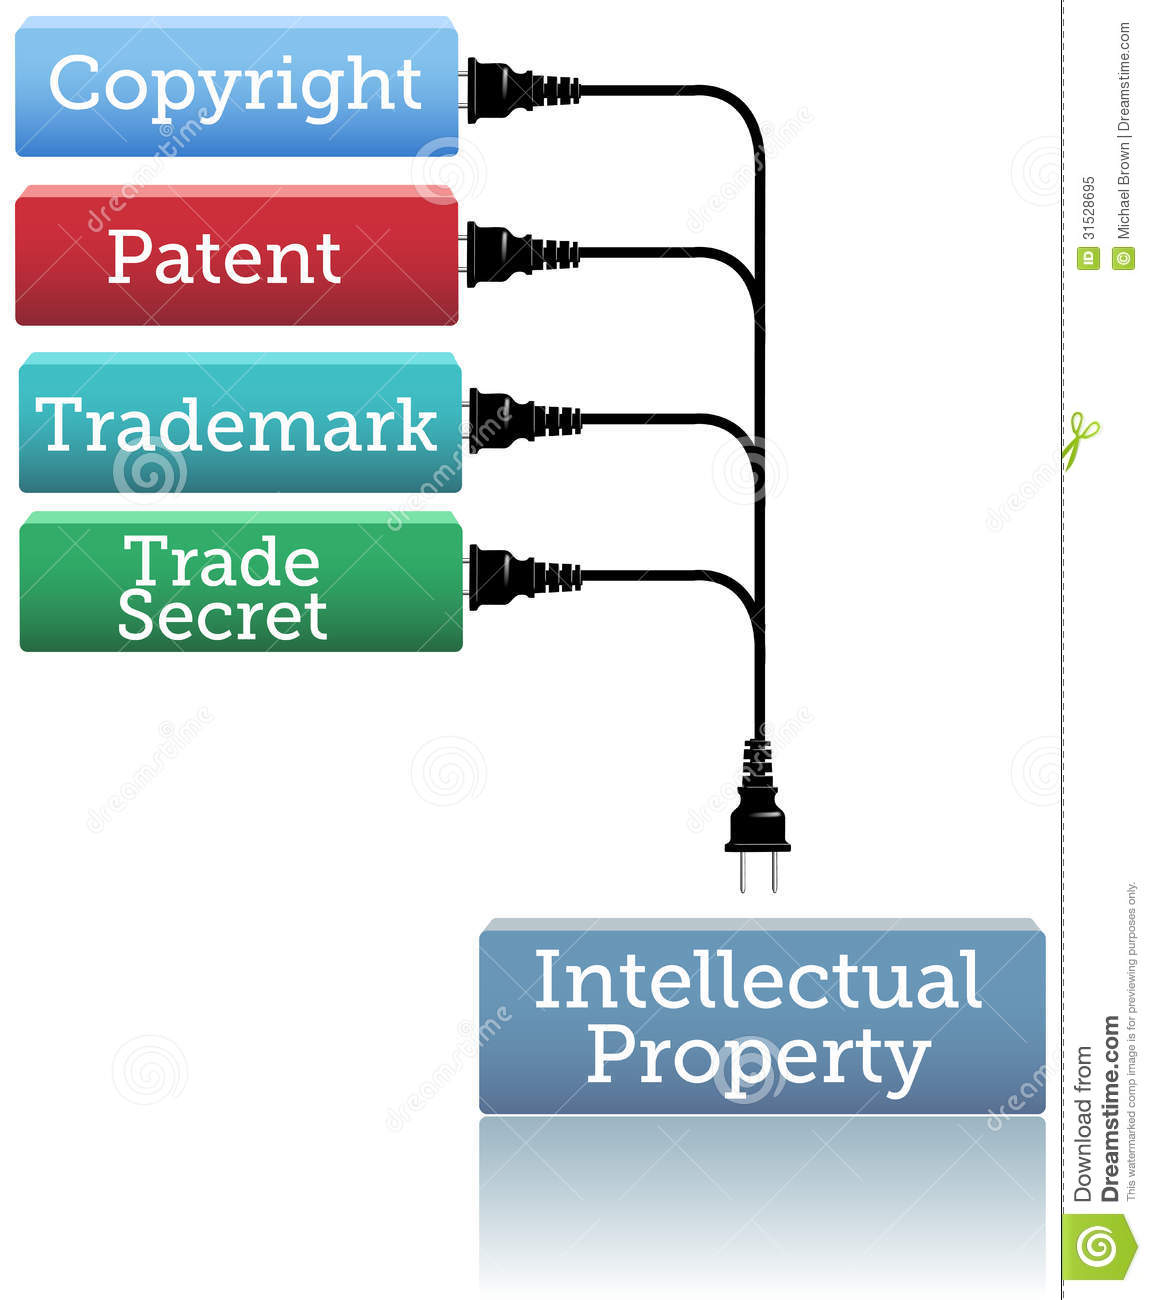 Intellectual Property Infringement: IP Plug In Copyright Patent Trademark Royalty Free Stock